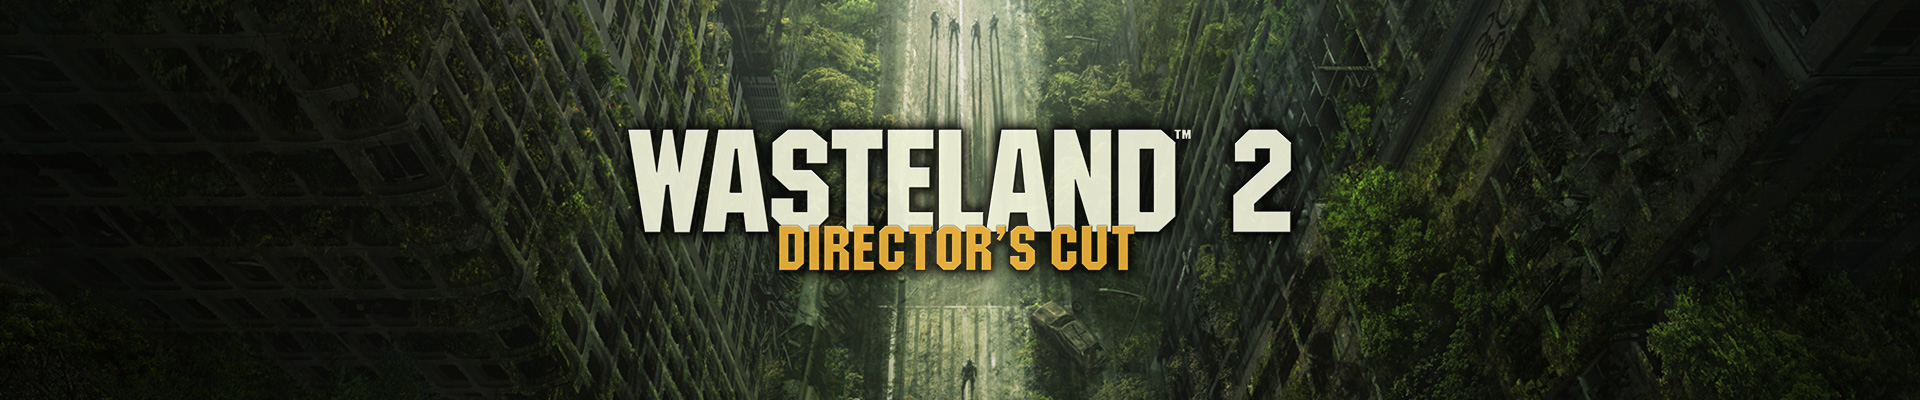 Мысли про: Wasteland 2: Director's Cut